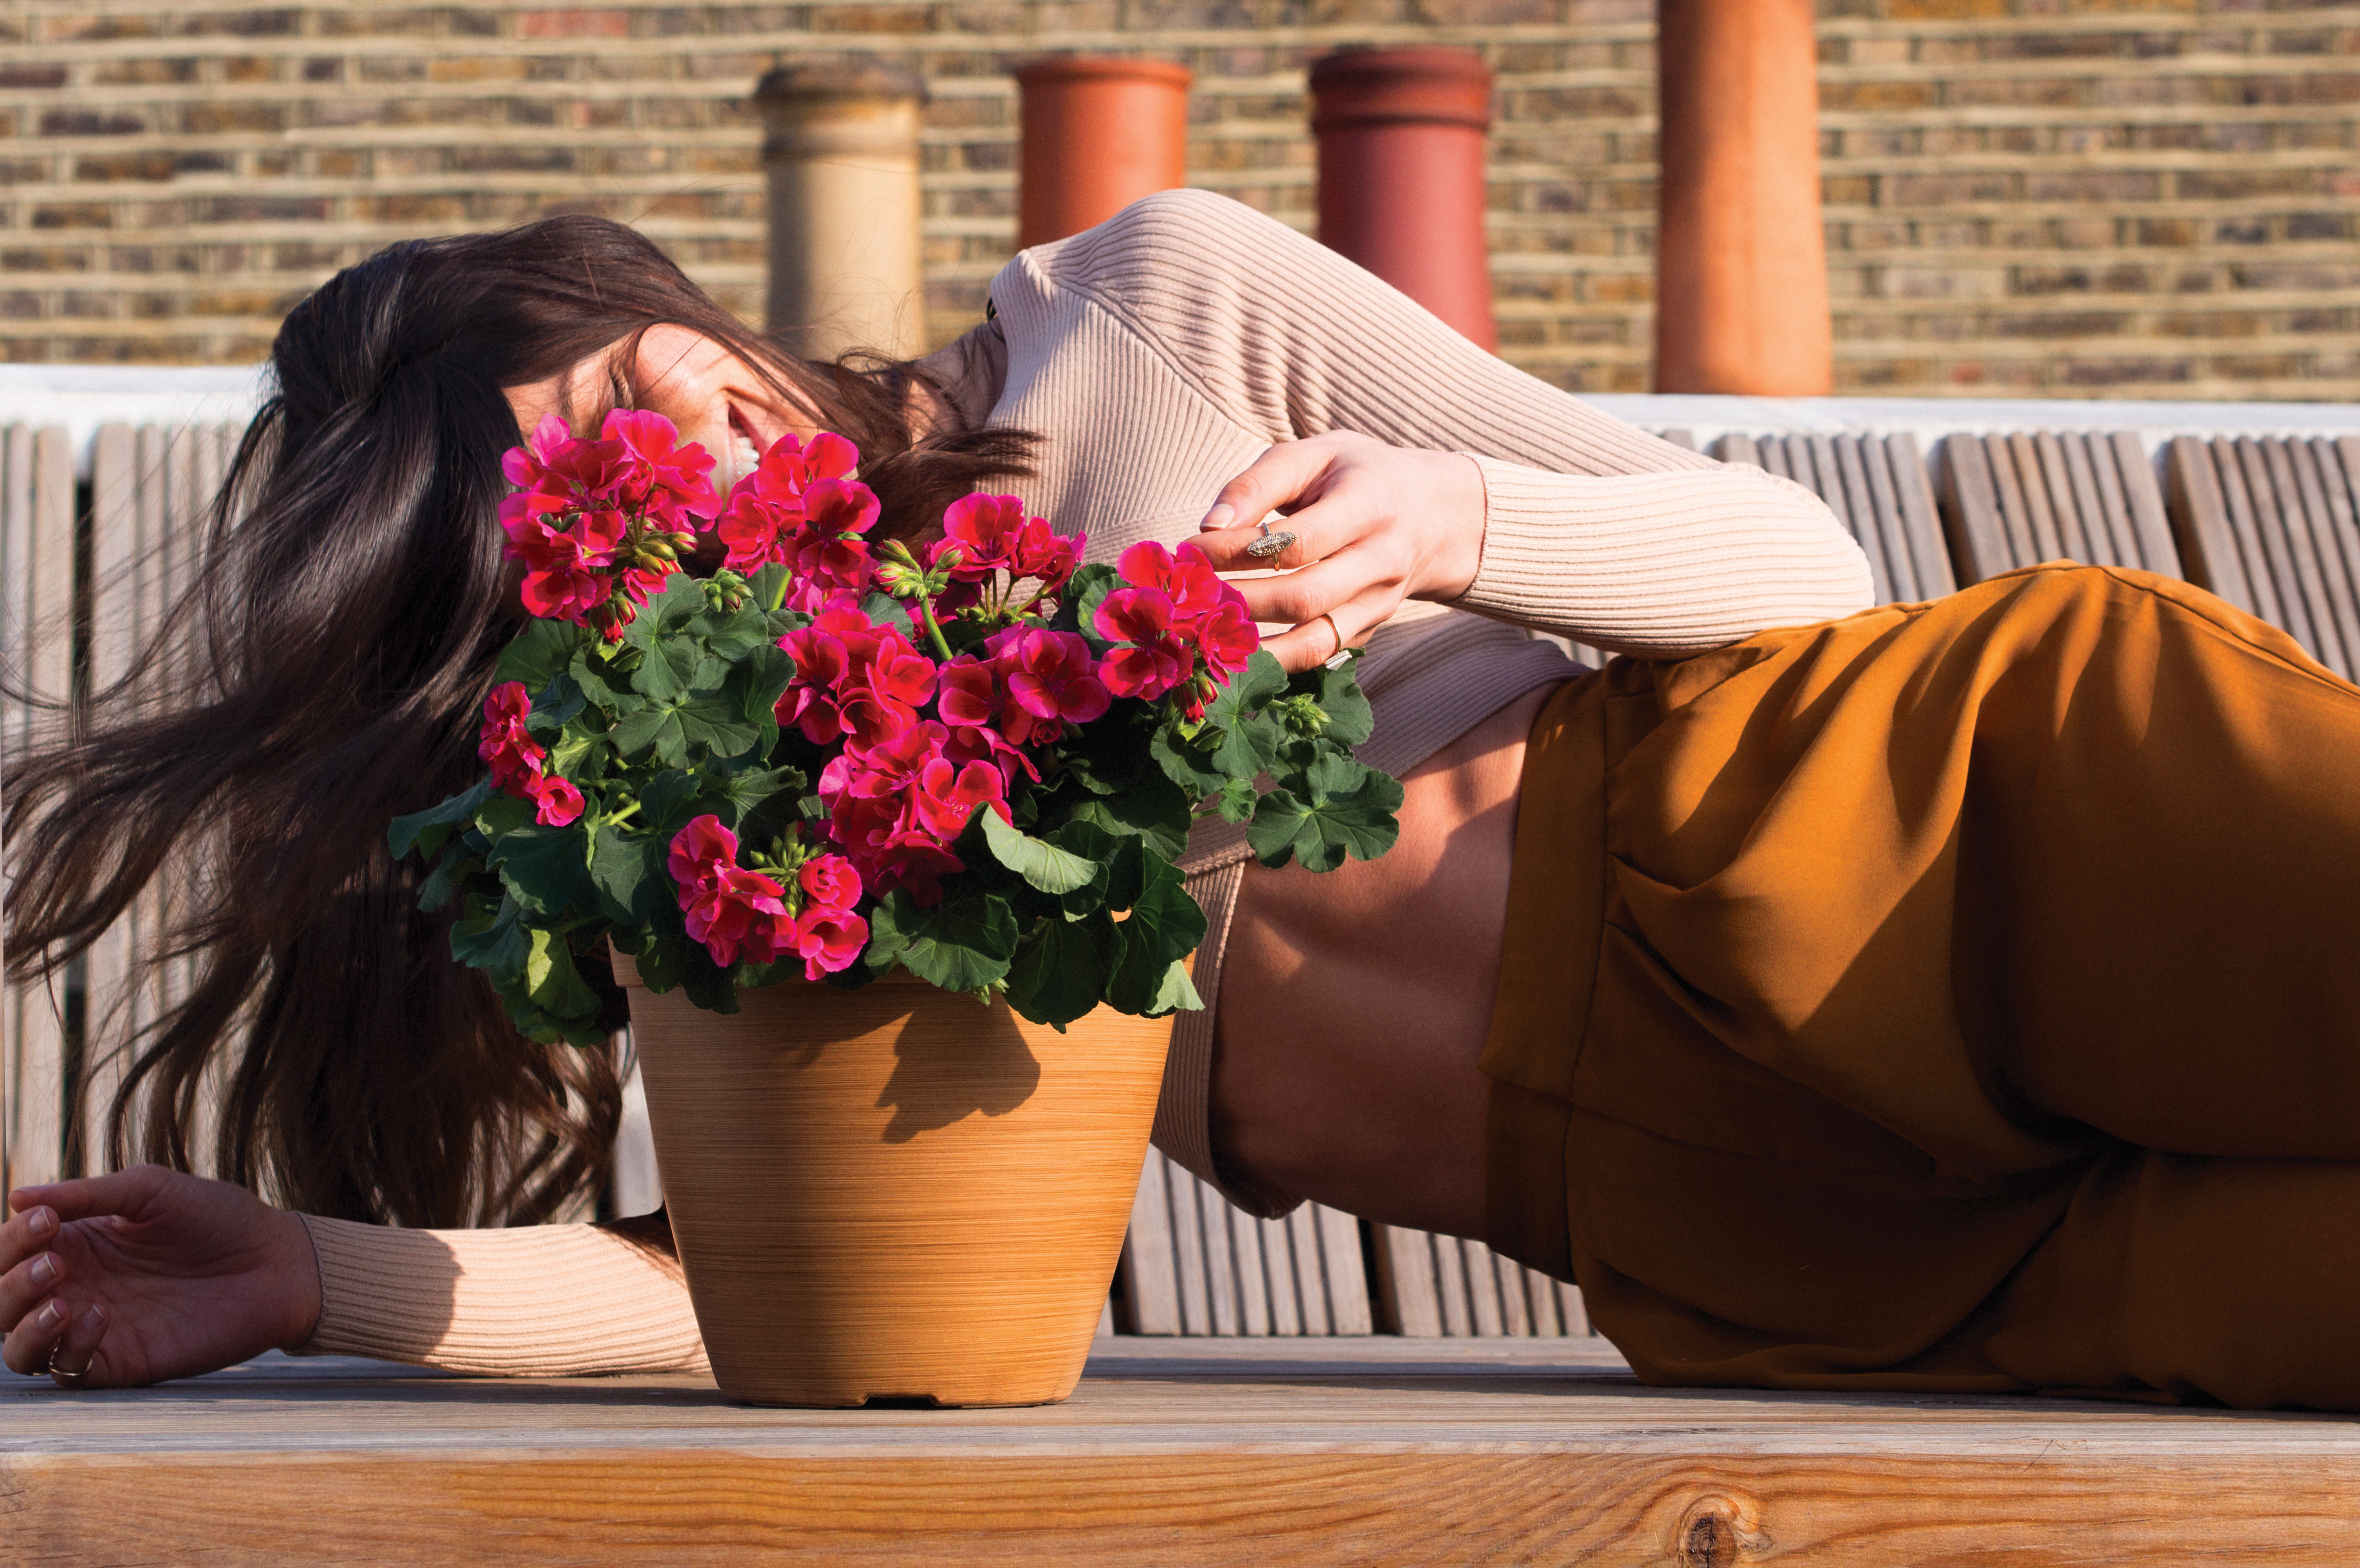 BETC London and KADŌ's Second Flowers Collection Inspires Everyone to Live Brighter